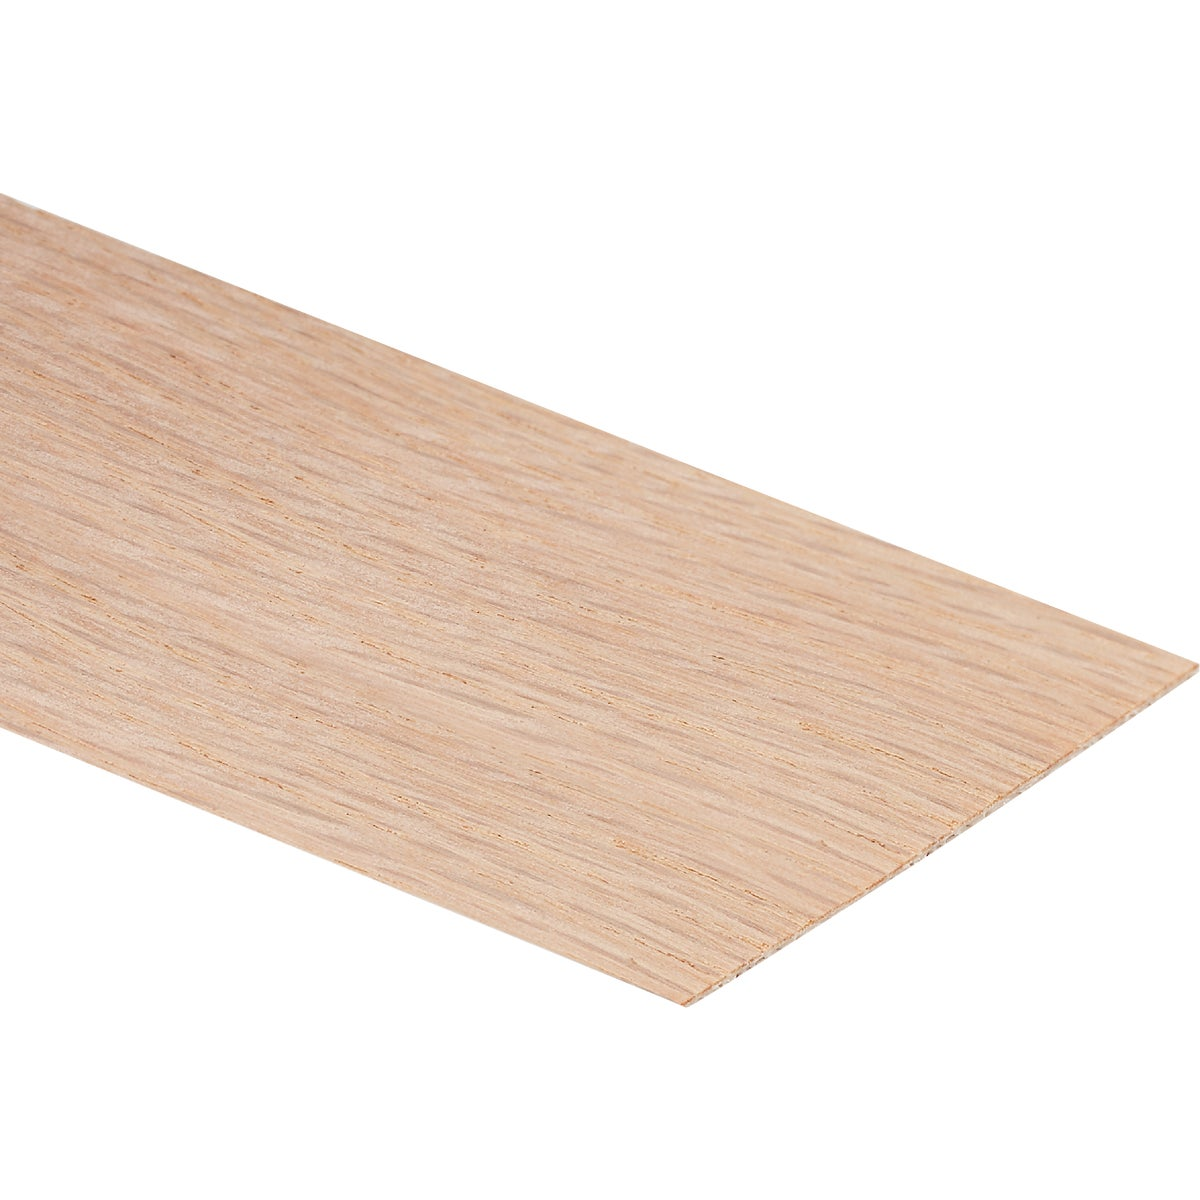 2X8 RED OAK VENER EDGING - 28010 by Cloverdale Co Inc